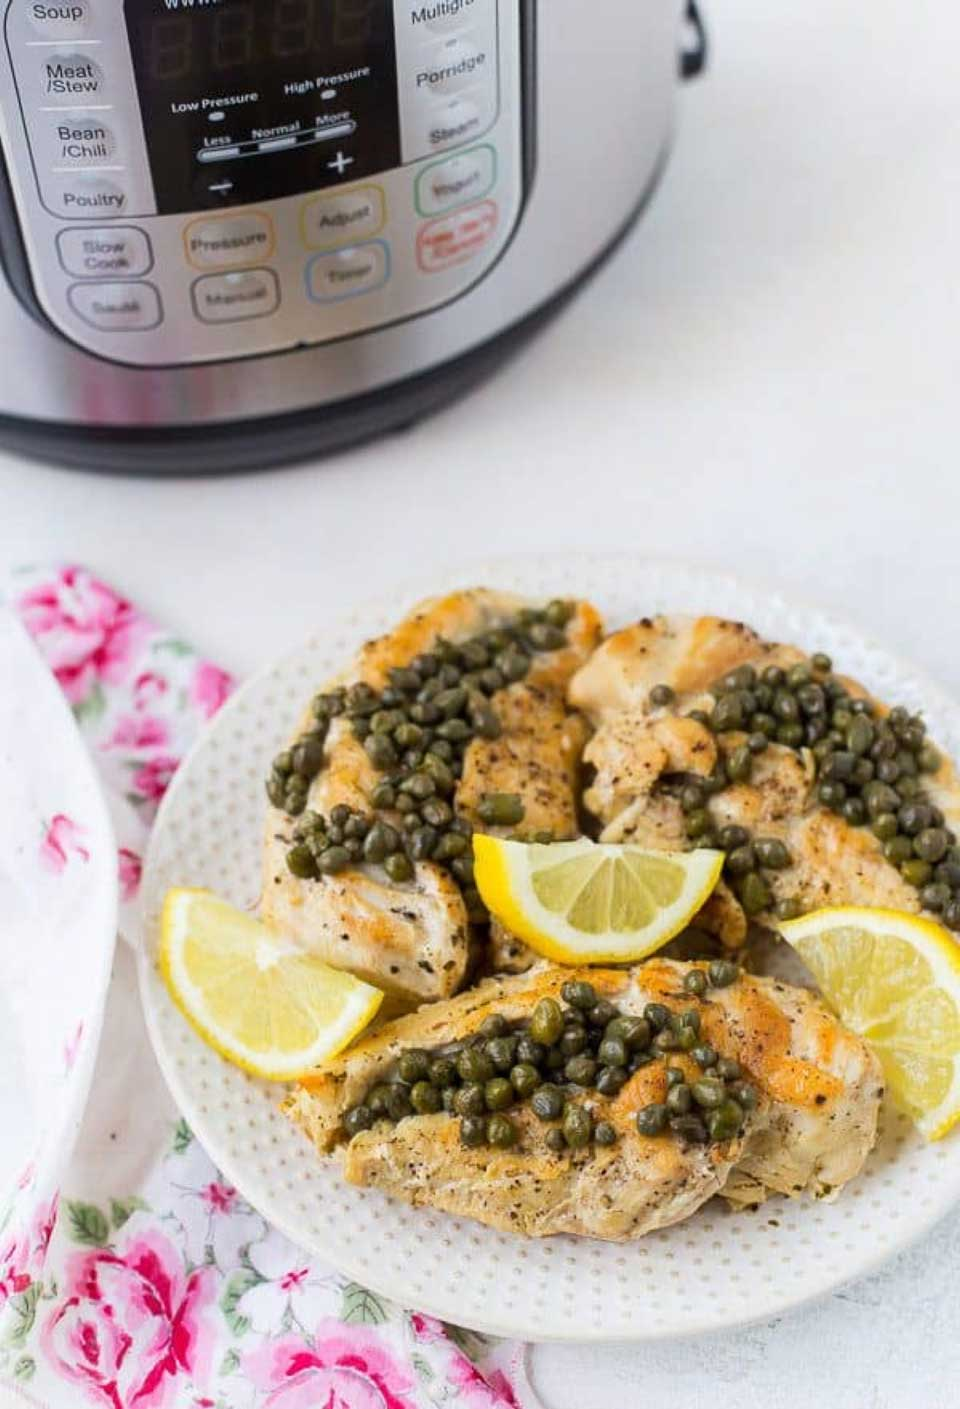 Classic chicken piccata is ready in a hurry when you use your pressure cooker! This Healthy Chicken Piccata in the Instant Pot from Rachel at Rachel Cooks is just one of the many terrific pressure cooker chicken dinners we've got for you in our yummy recipe round-up!